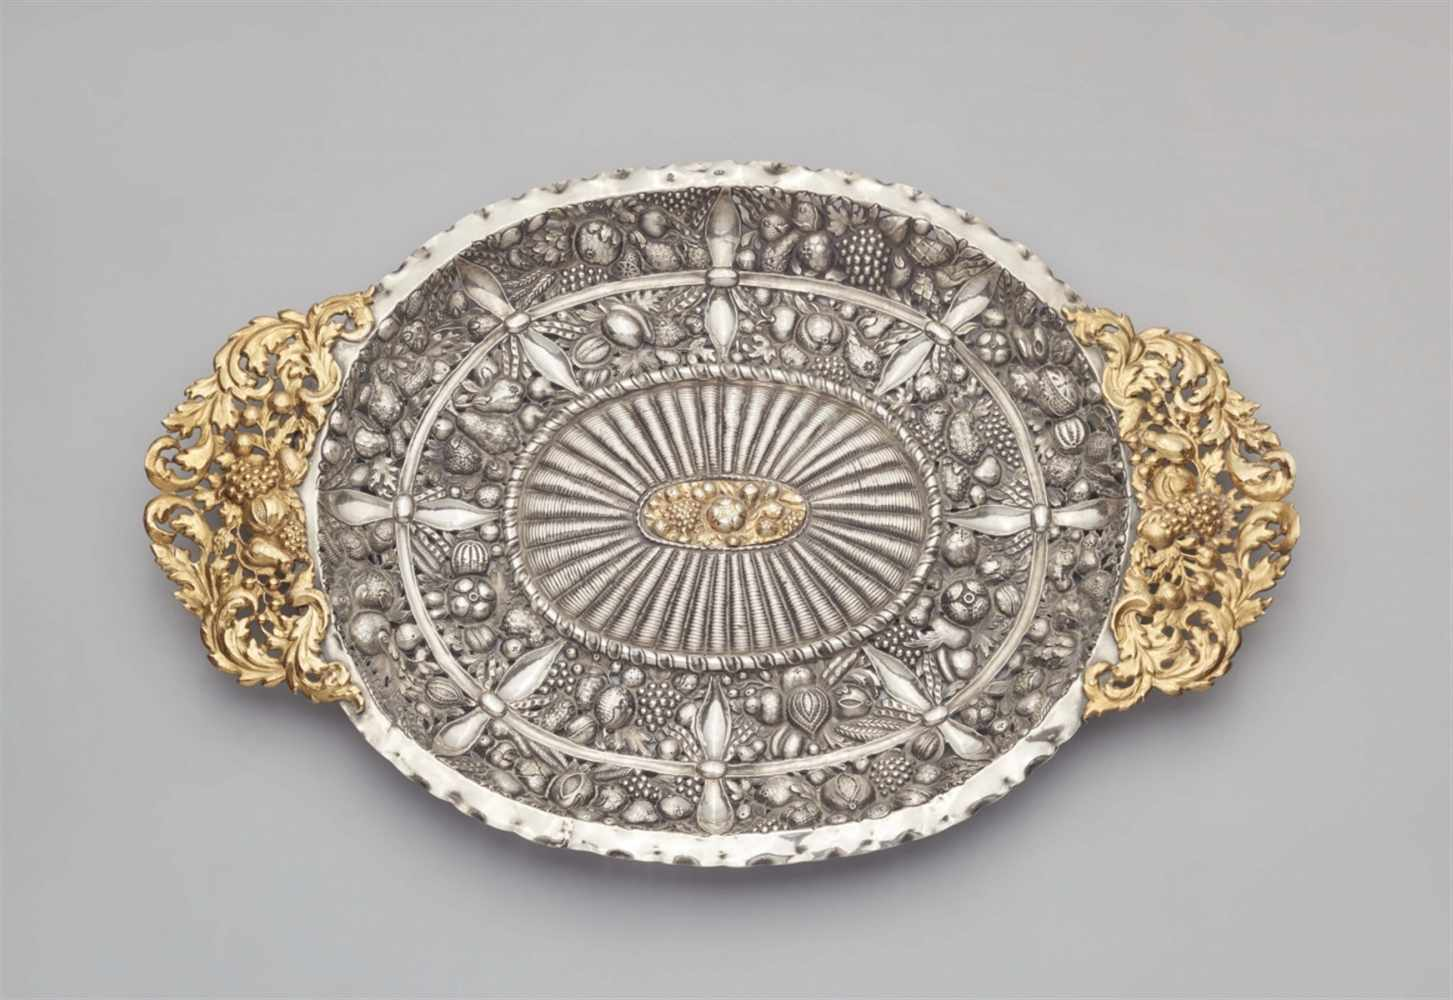 Lot 322 - An Augsburg silver sideboard platterOval platter with pierced fruit garland handles, decorated to